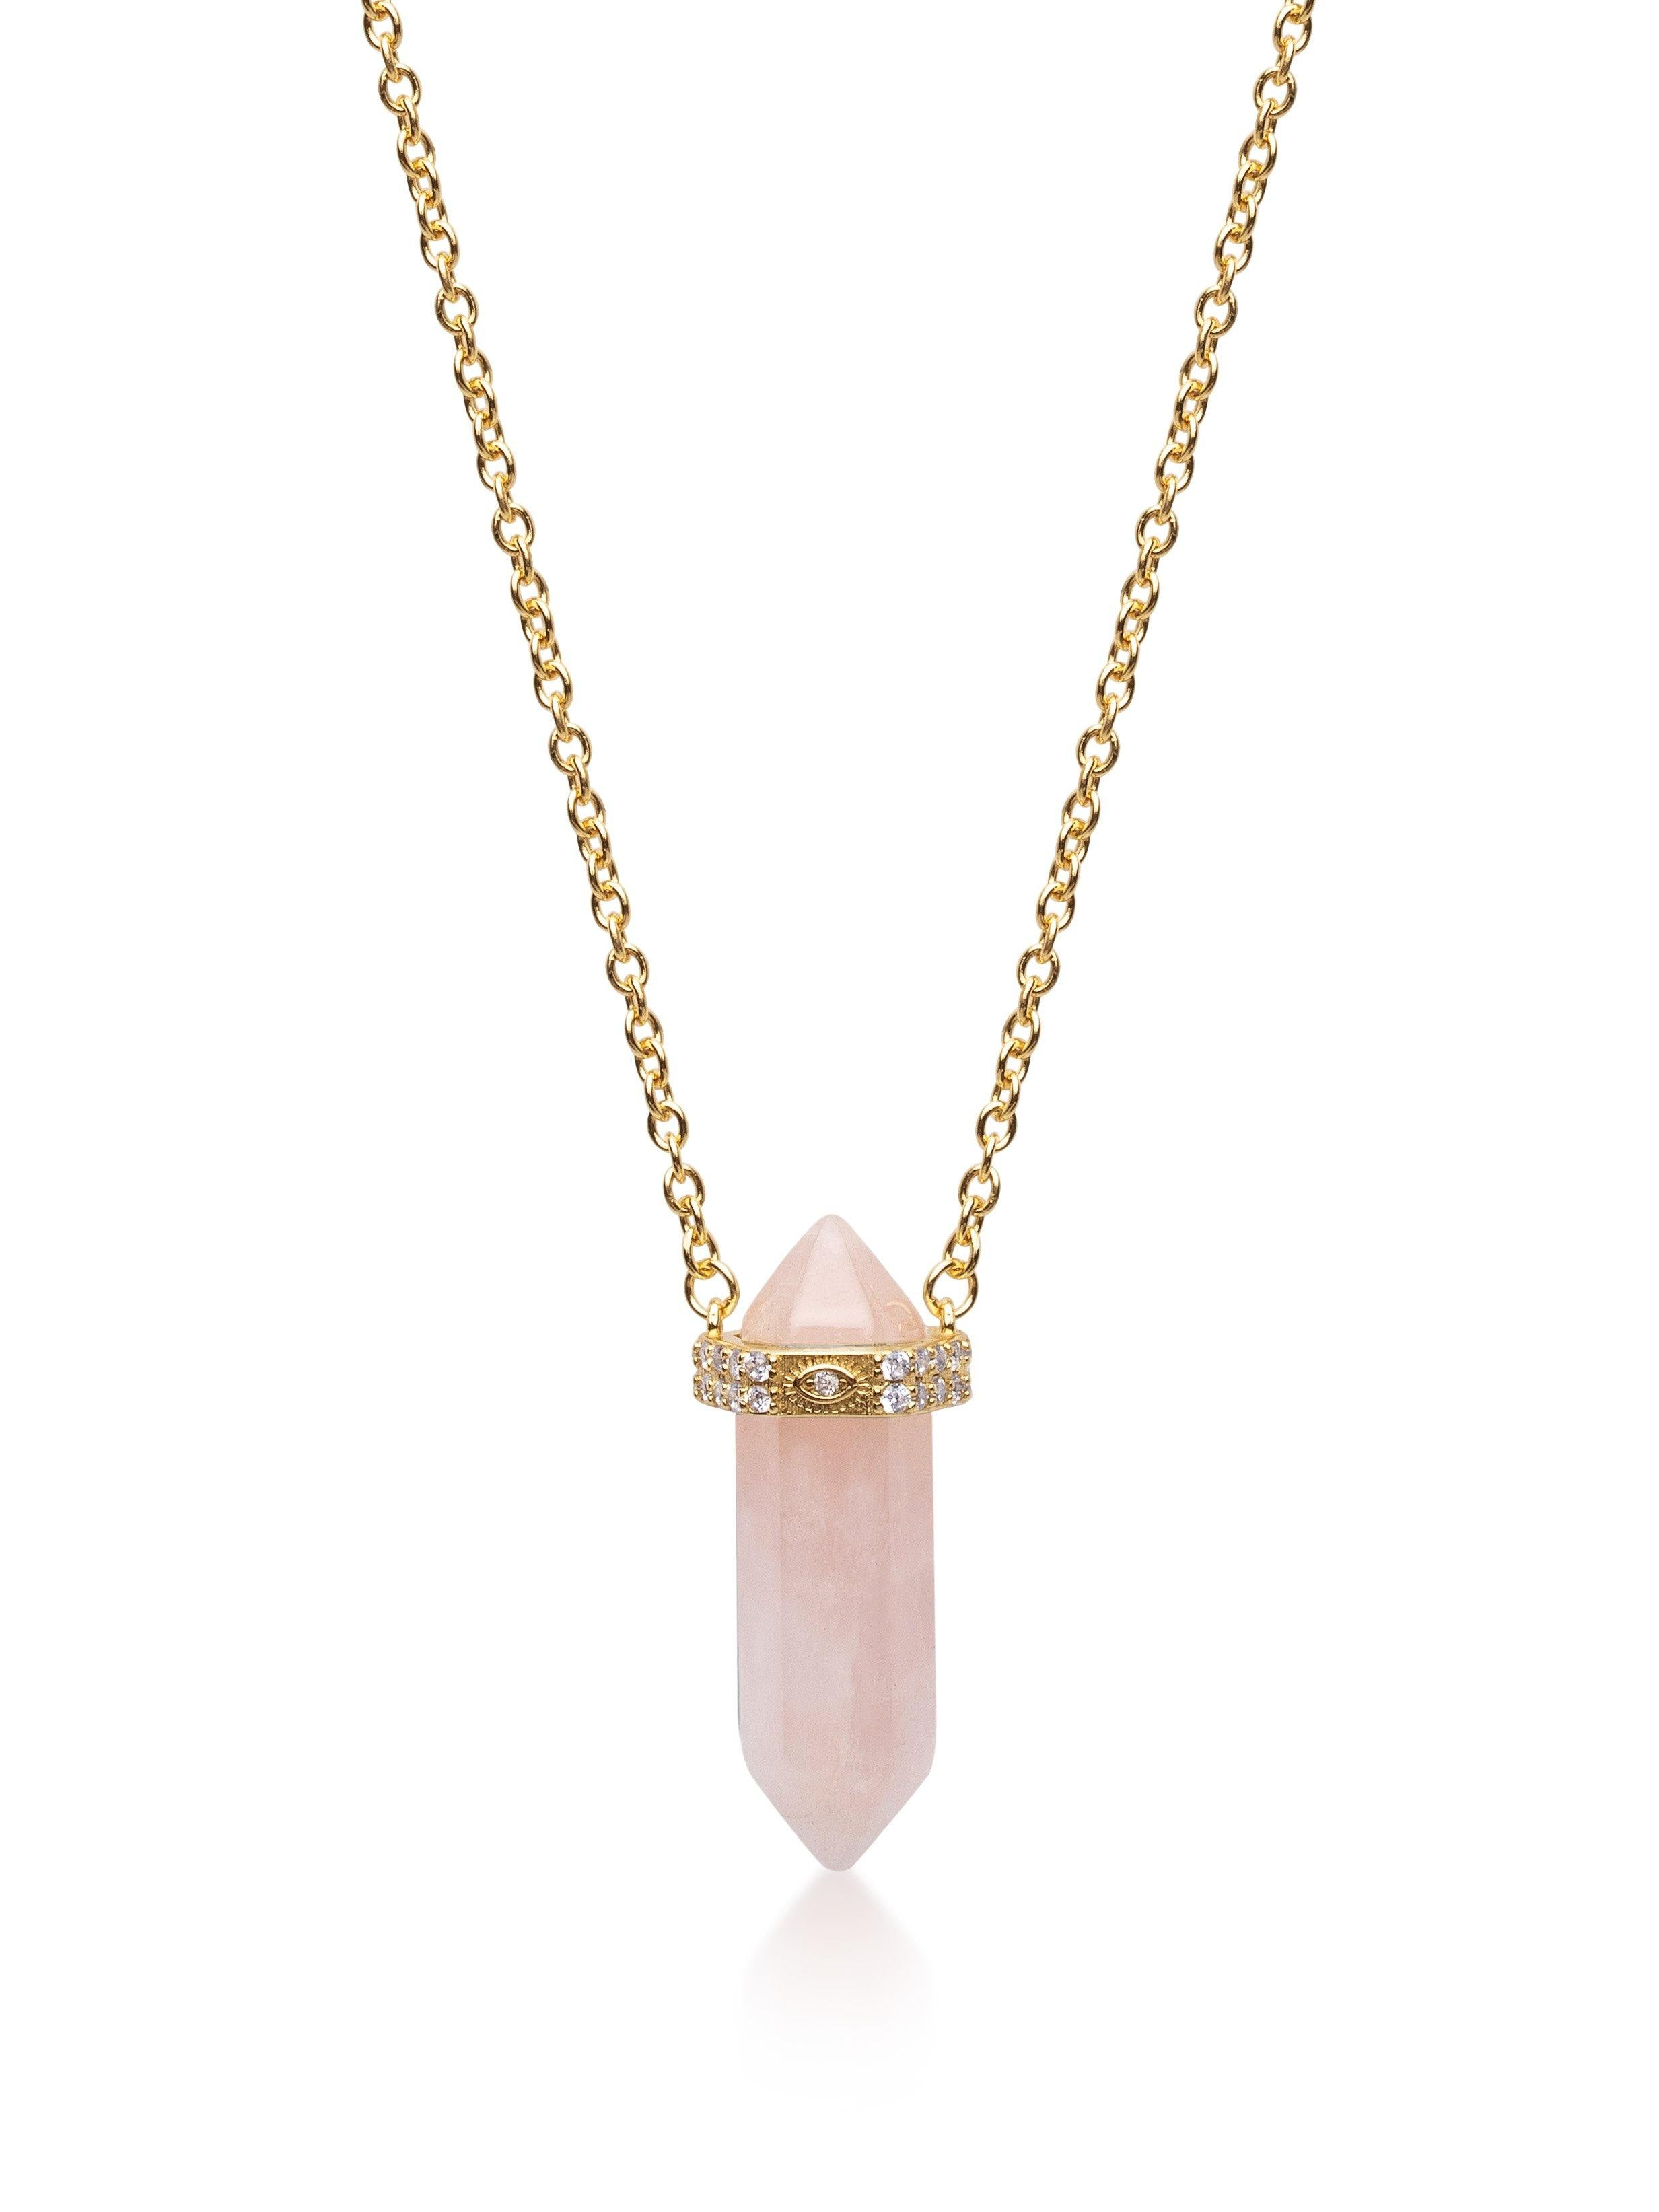 Women's Rose Quartz Crystal Necklace with Engraved Evil Eye Detail